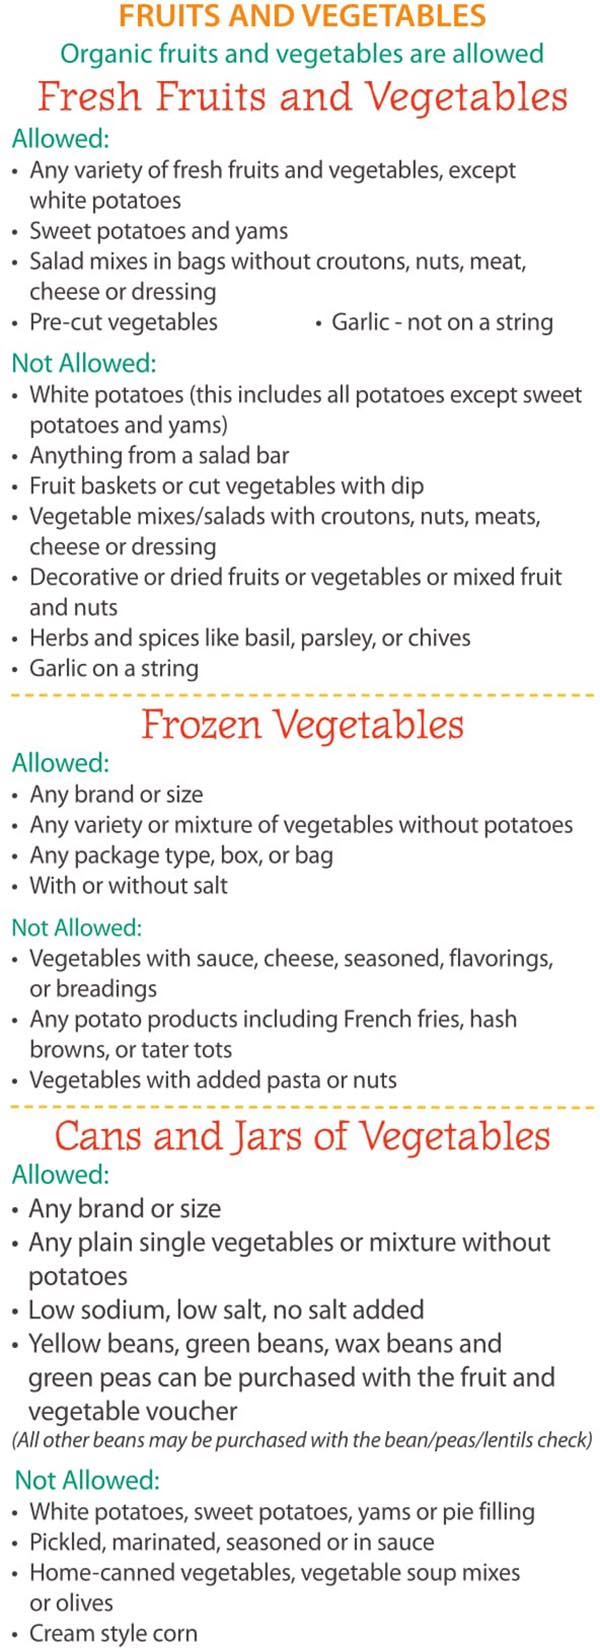 Maine WIC Food List Fruits and Vegetables